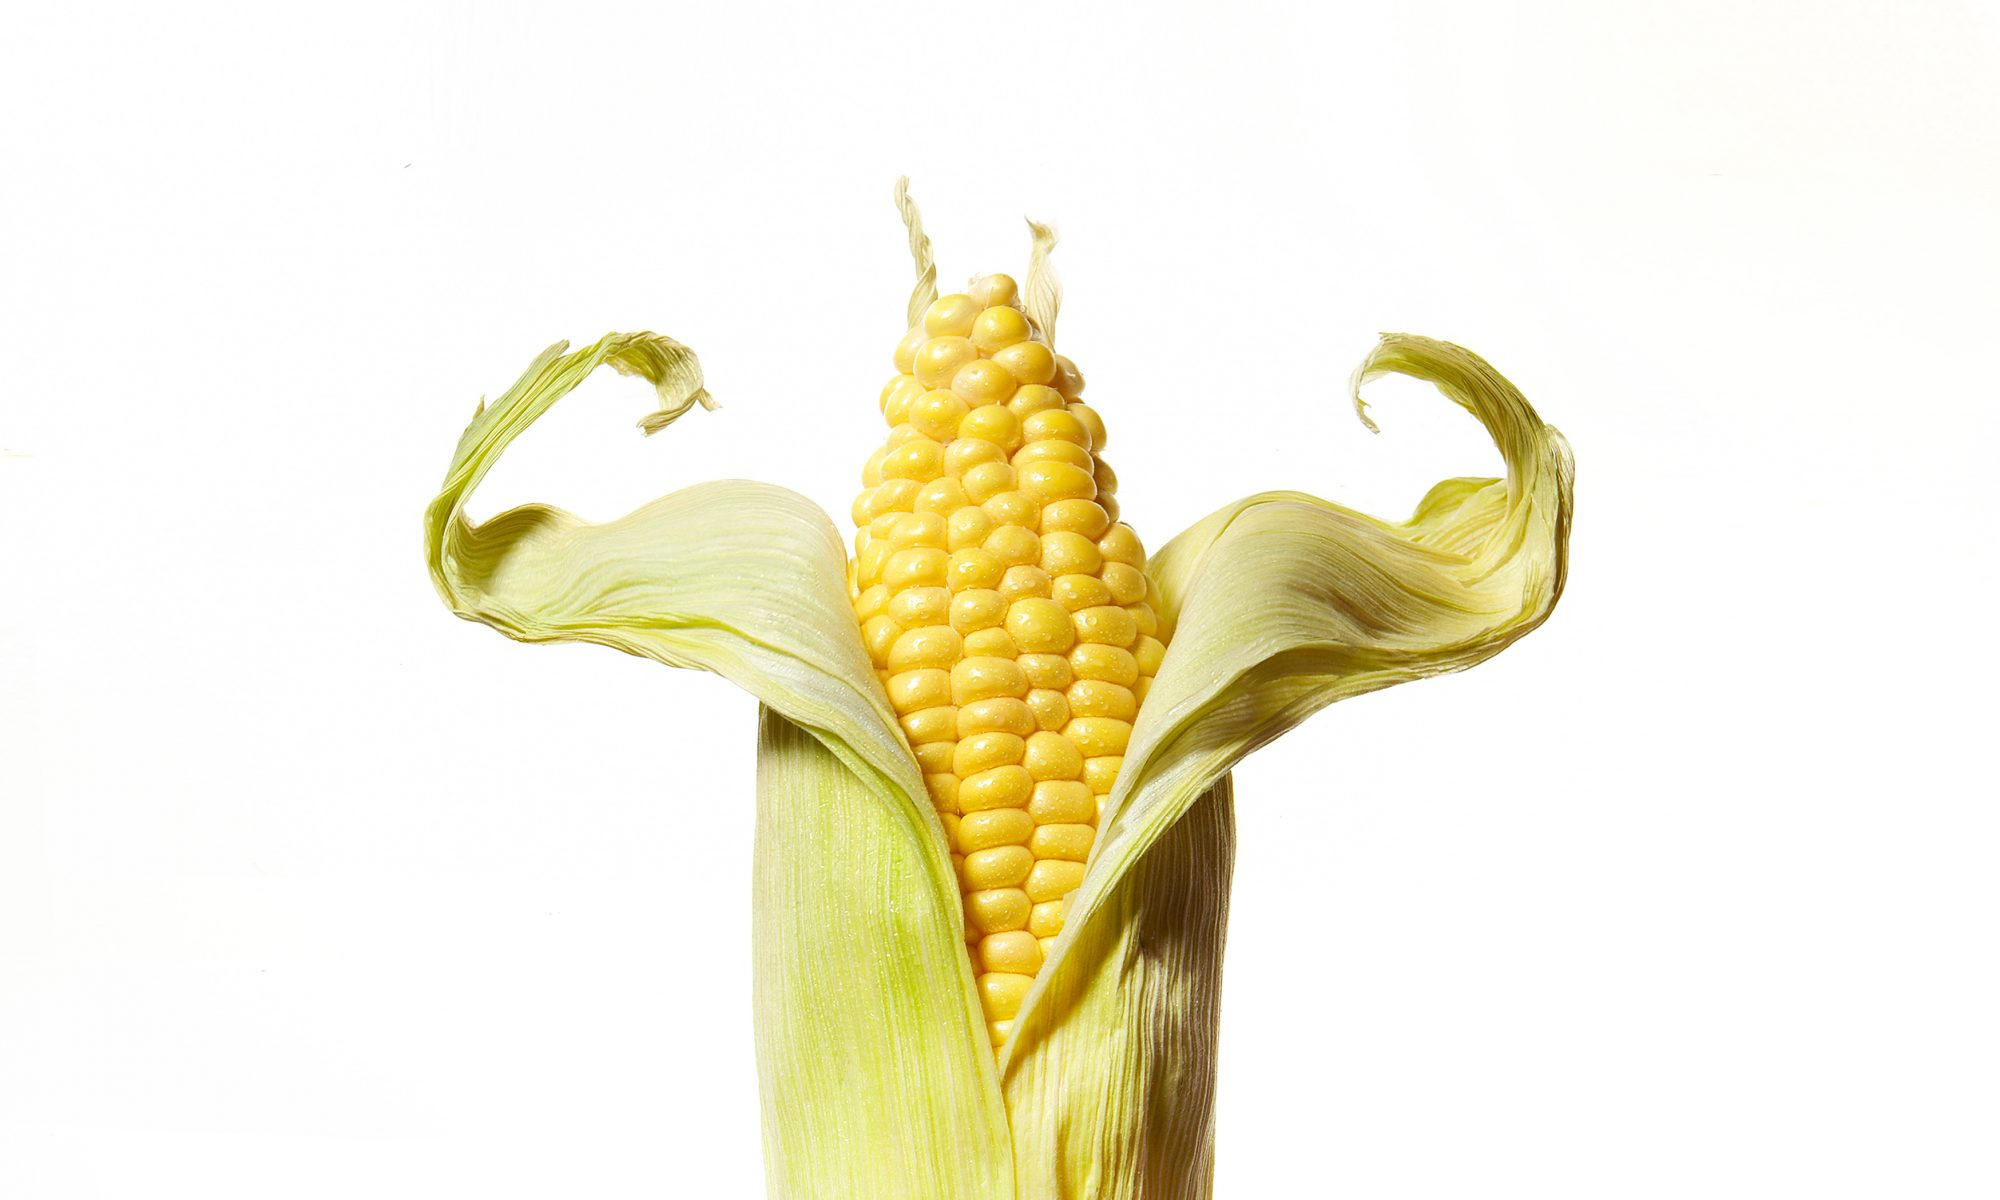 corn cob flexing muscles